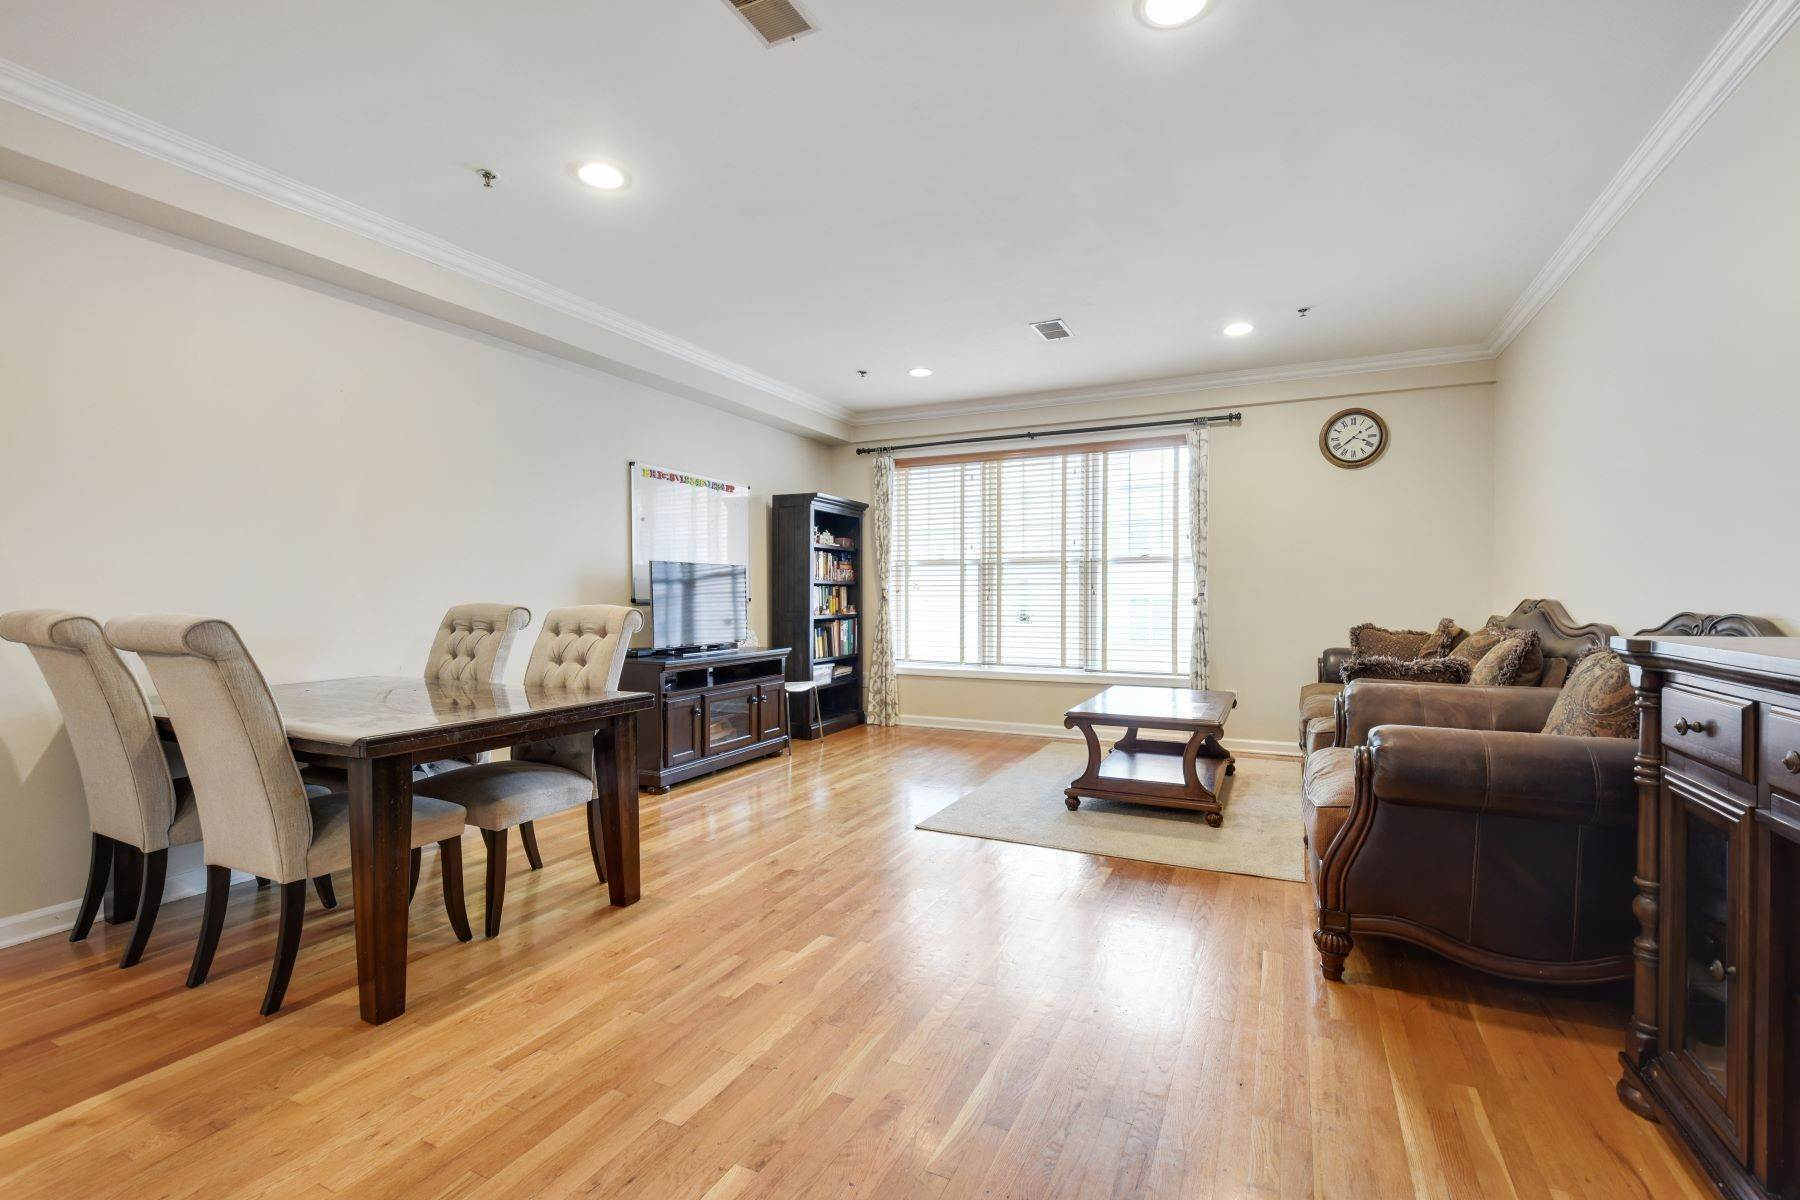 Other Residential Homes at BROKER FEE PAID BY LANDLORD! 1120 Clinton Street, Unit 4A Hoboken, New Jersey 07030 United States